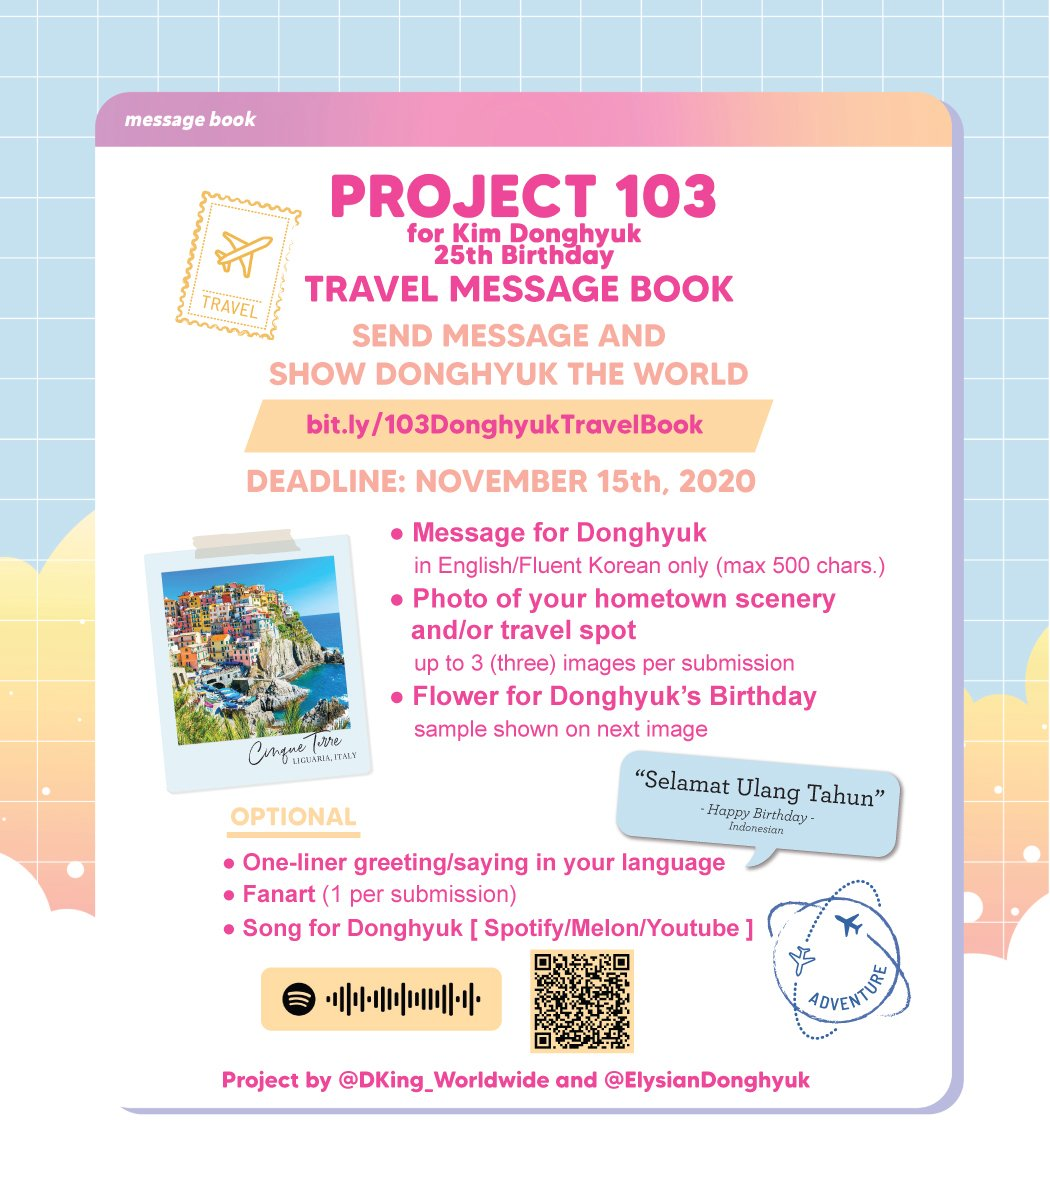 #Project103DONGHYUK TRAVEL MESSAGE BOOK ✈  For ENGLISH form, check here: 💌 https://t.co/X4m4I2Mzps  🗓️ til Nov15  Let's send lovely messages for our dear  #DONGHYUK for his BDAY. Please share! Thank you 🌻  #DK #동혁 #iKON #아이콘 @YG_iKONIC https://t.co/CIIGIqQVo6